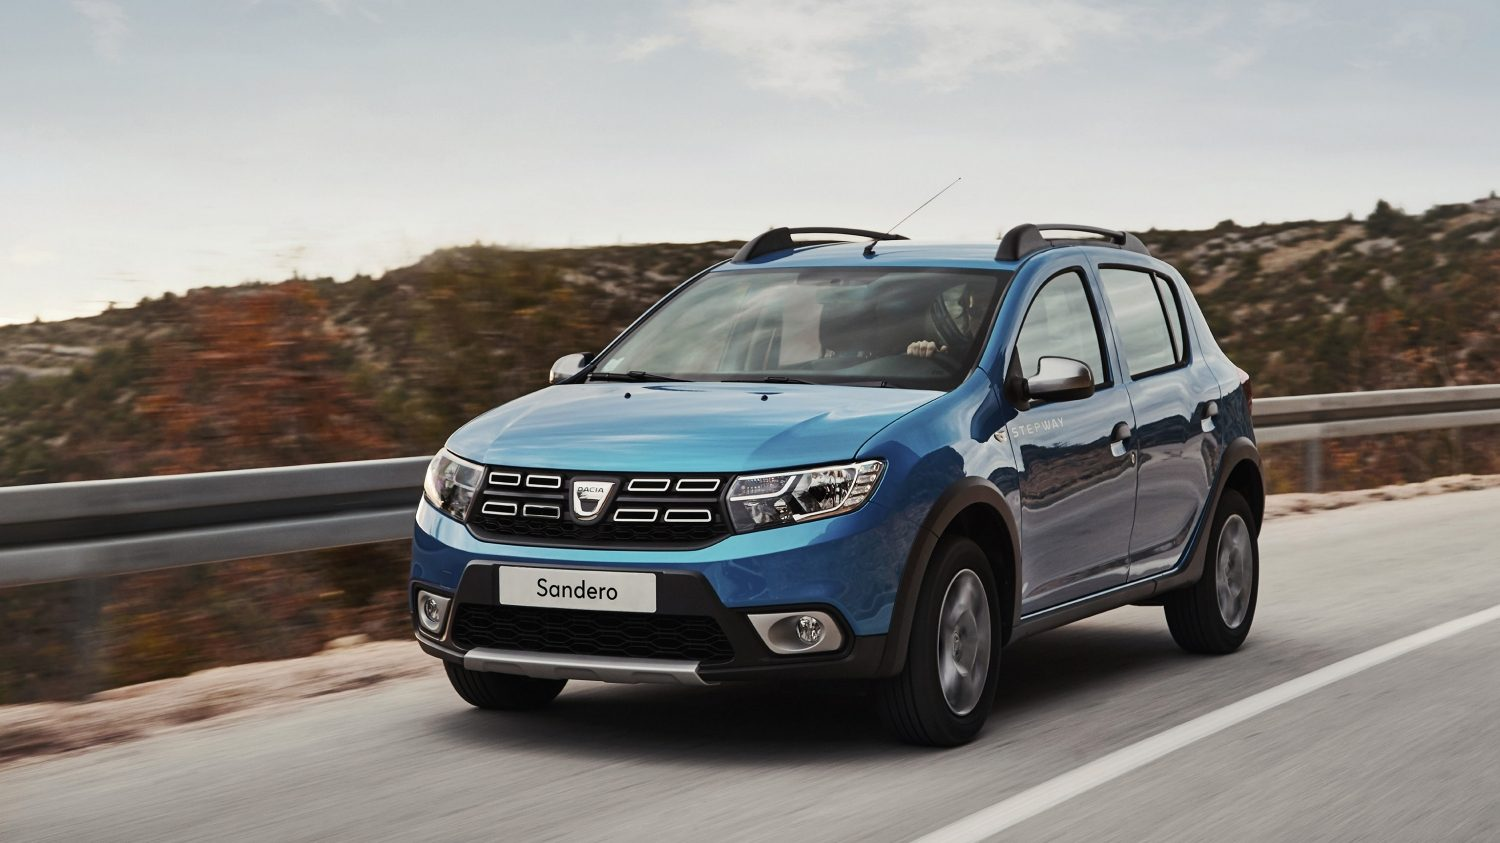 Dacia Sandero Stepway Turbo 90